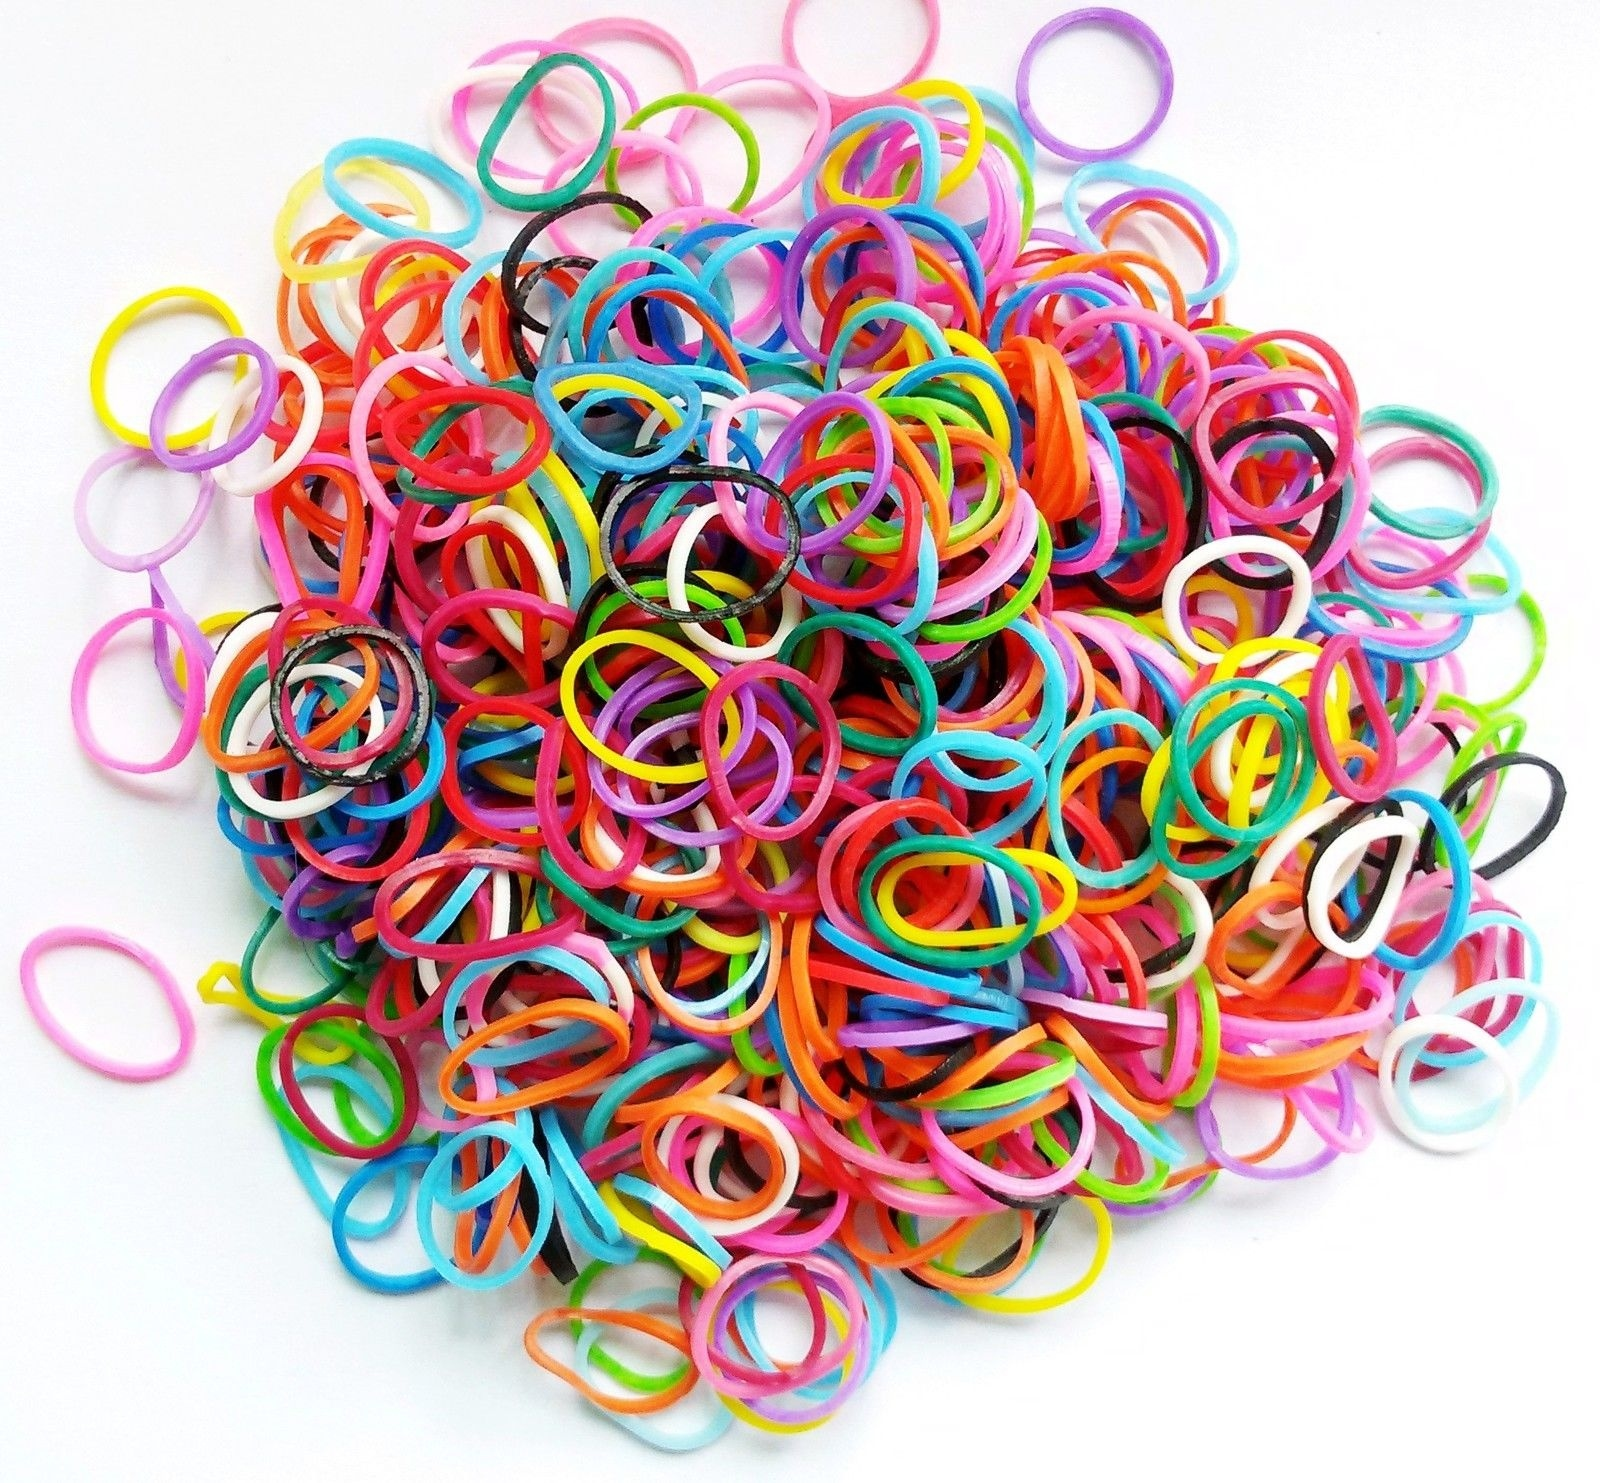 100pcs/bag Mixed Colorful Rubber Bands Girls Pet Dog DIY Hair Bows Grooming Hairpin Hair Accessories